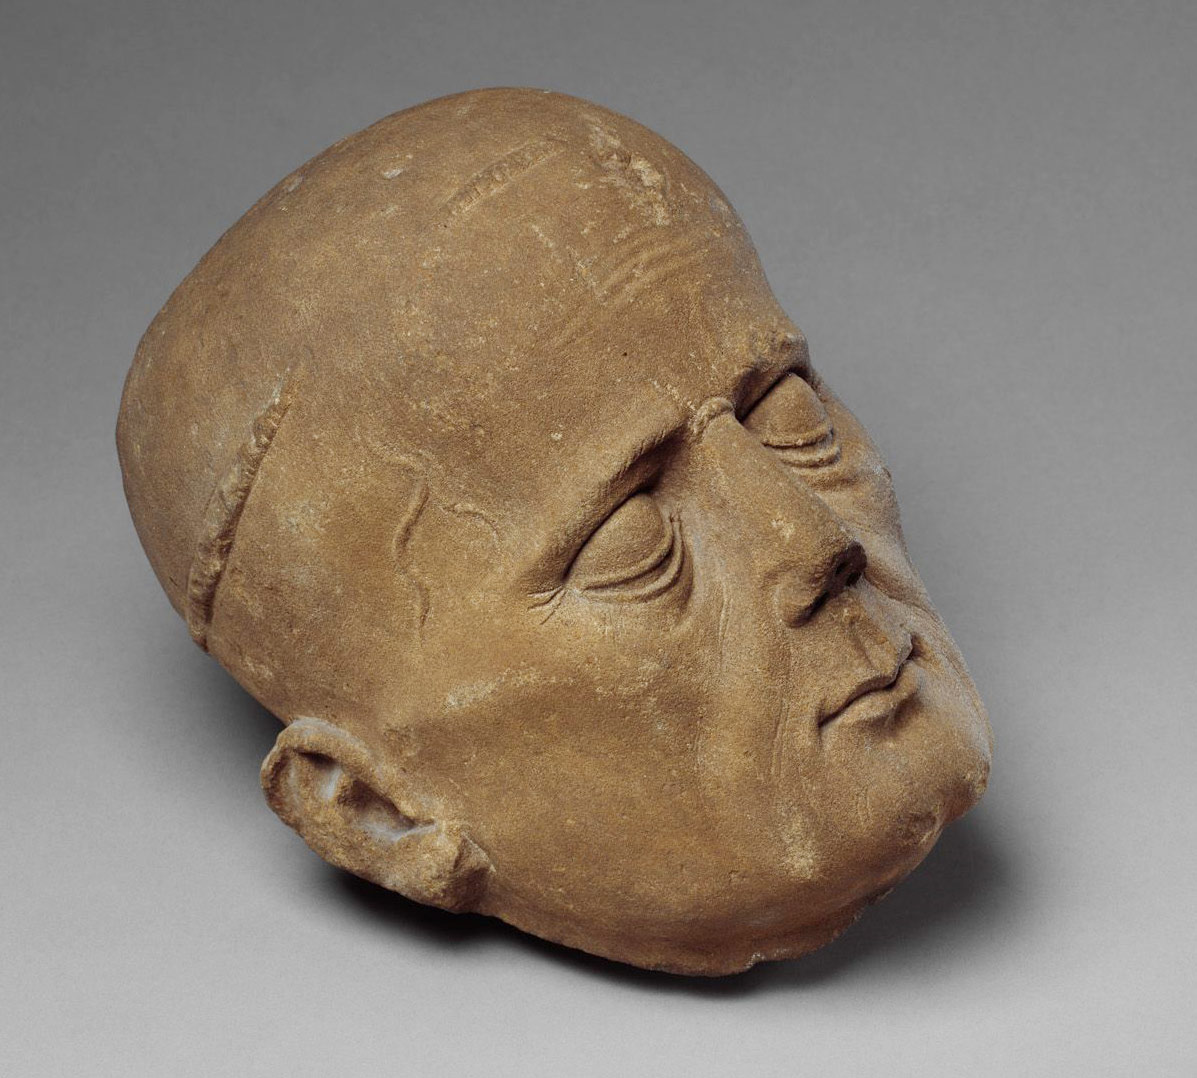 Head of a Cleric from a Tomb Effigy